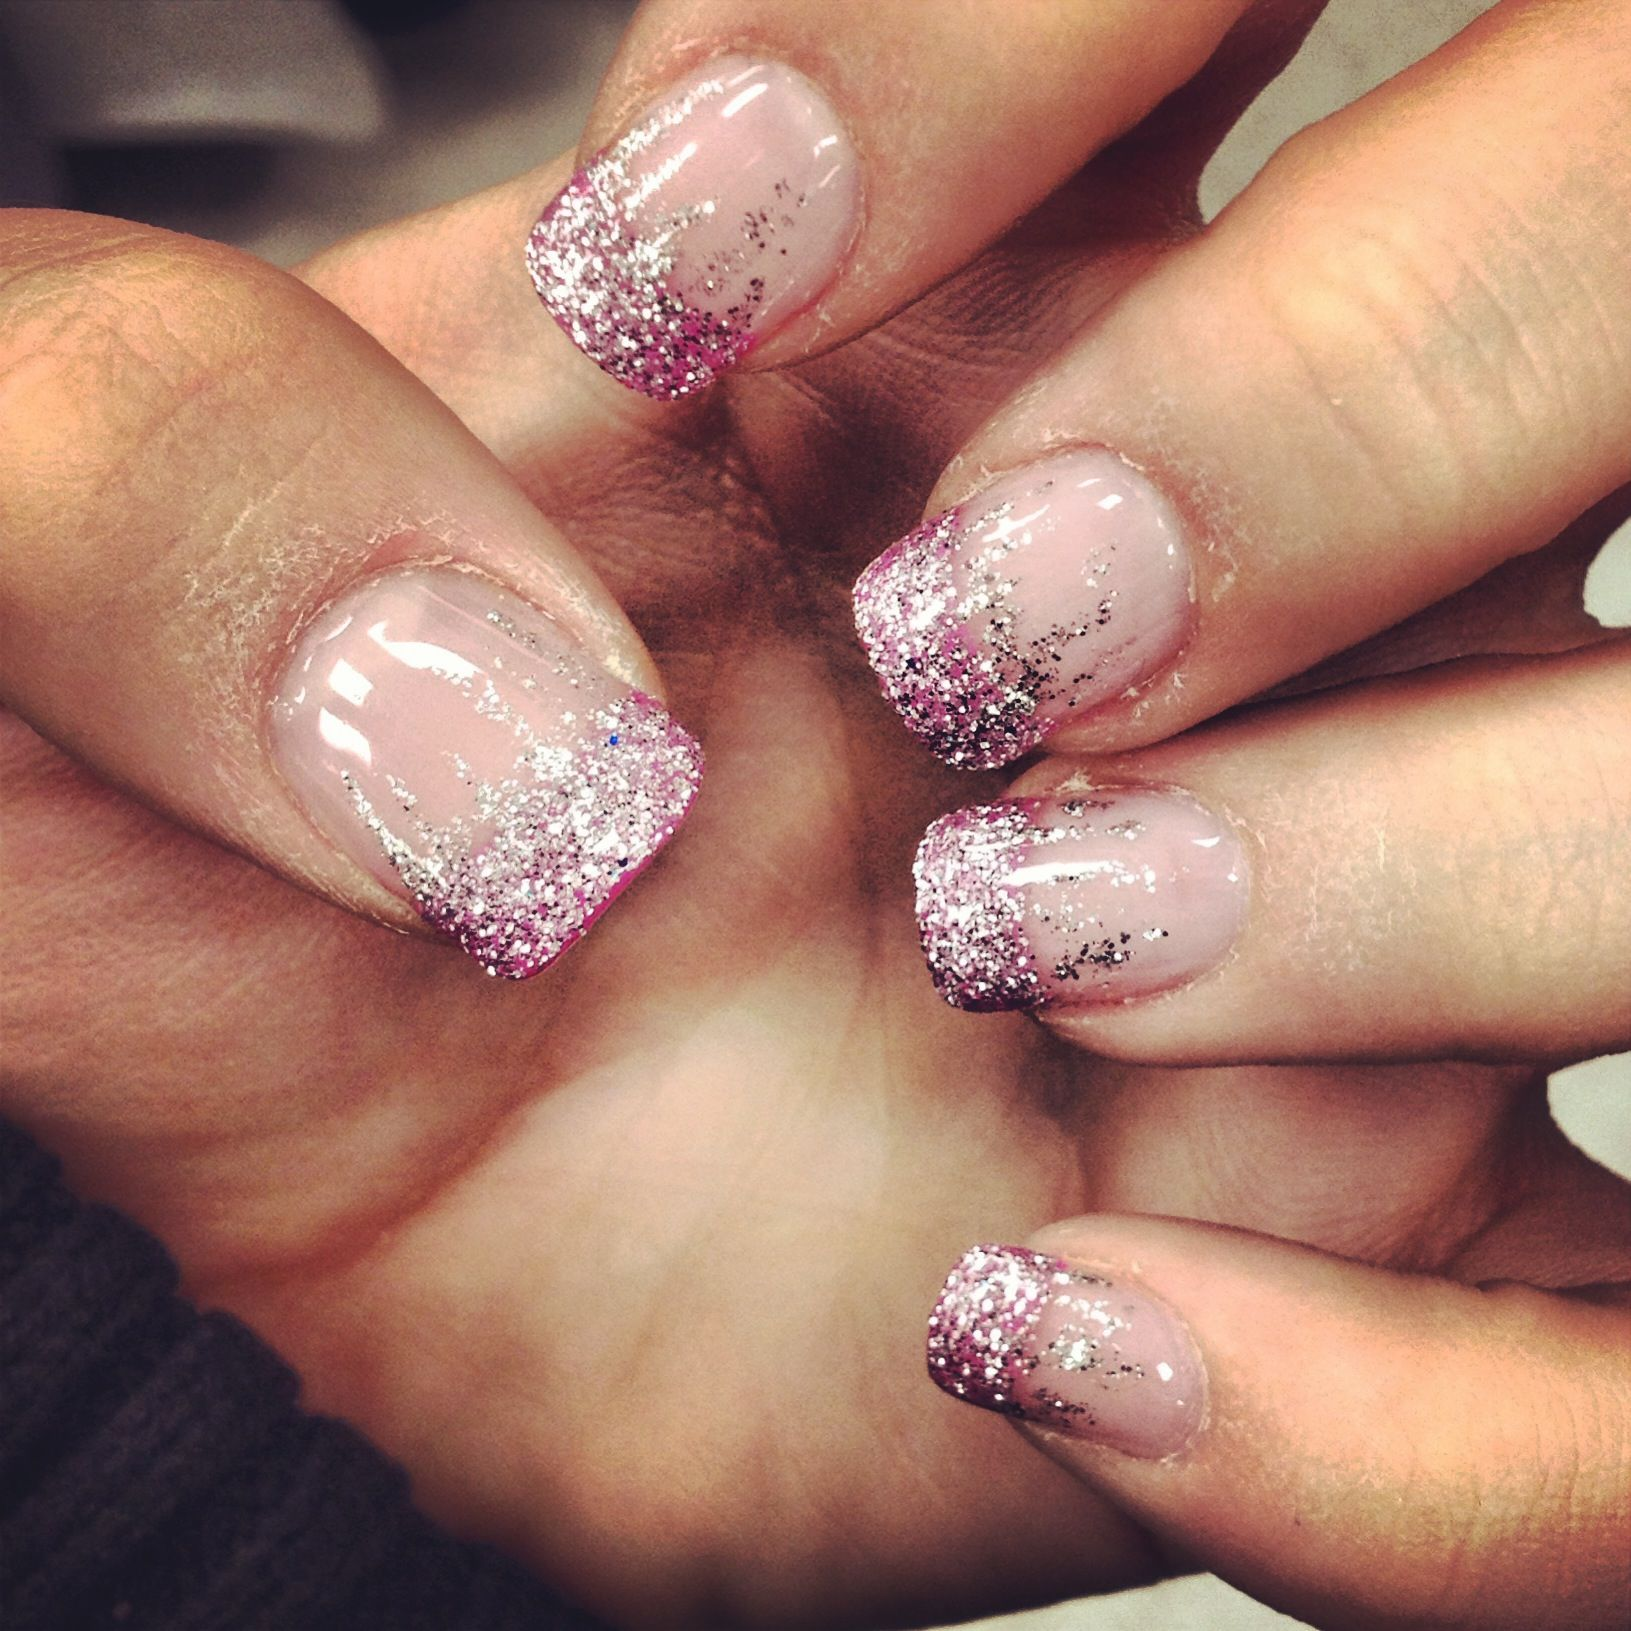 Just got new fill ins <3 pink french manicure with glitter! | My ...